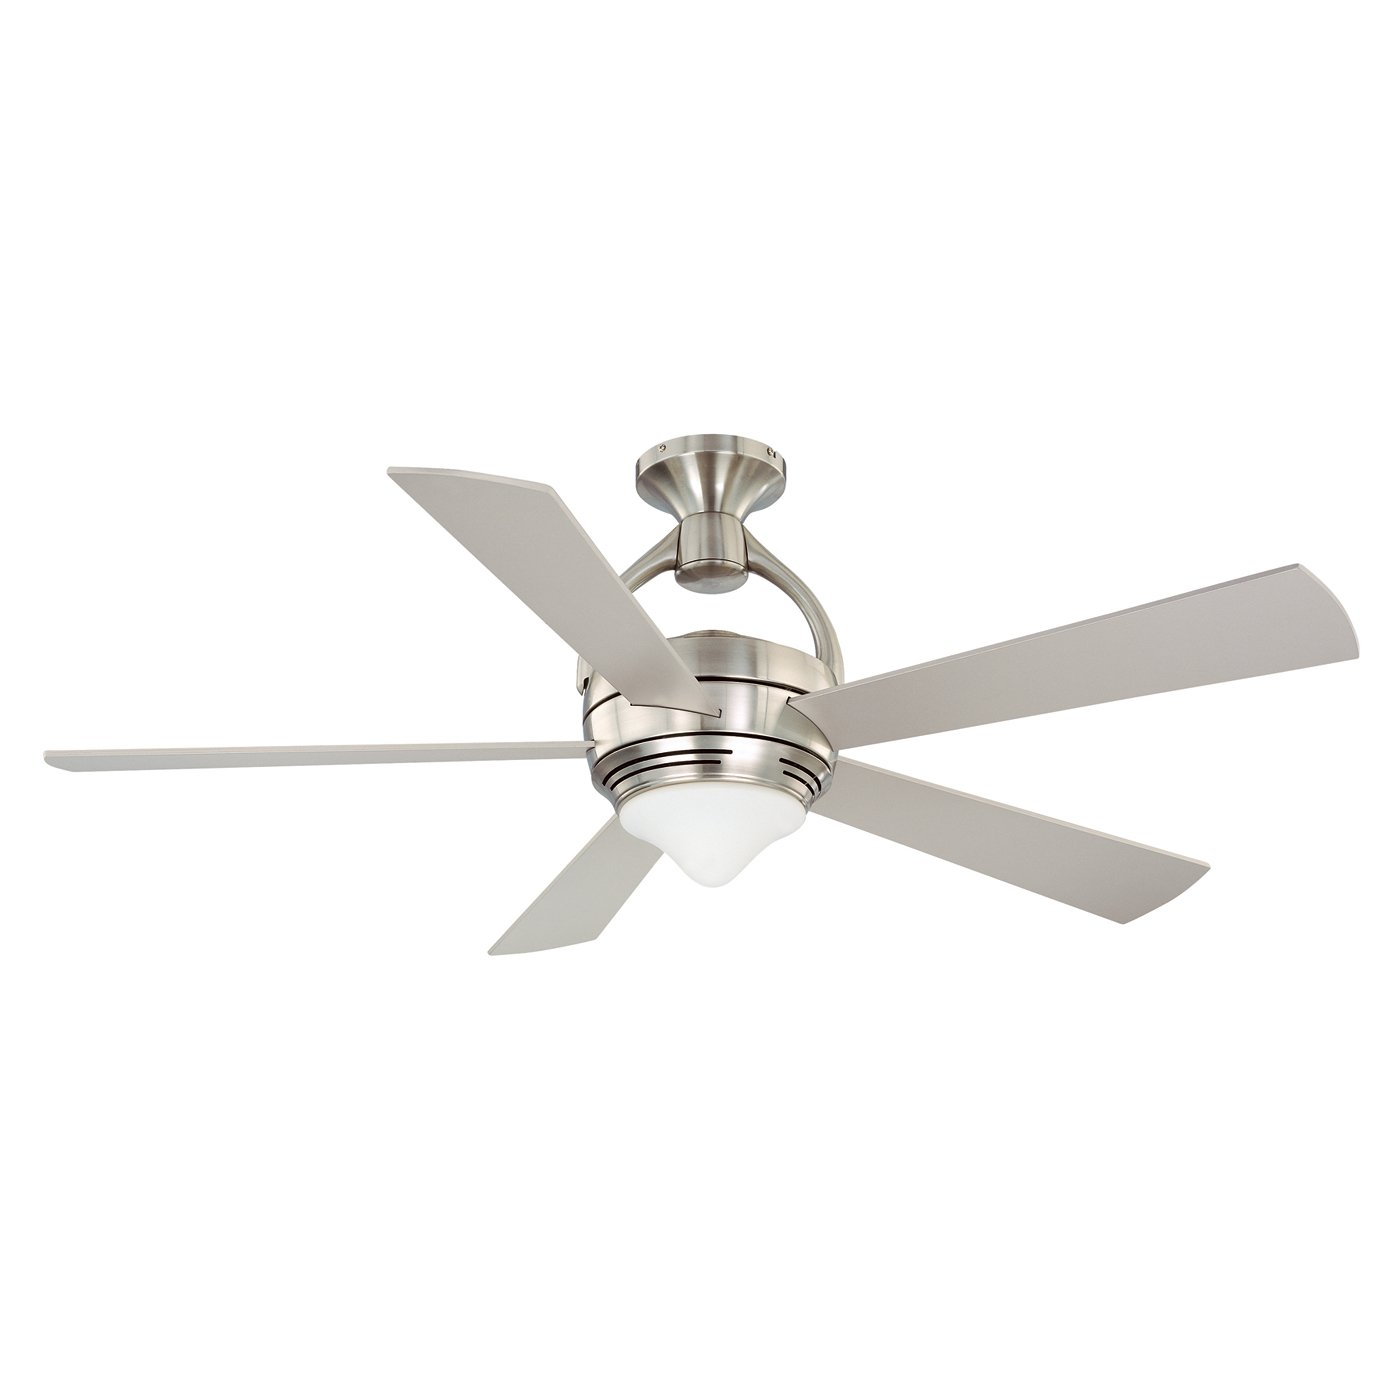 Kendal Lighting Ac18052 Sn Premia 52 Inch 5 Blade 1 Light Ceiling Fan Satin Nickel Finish With Blades And Integrated Kit Com